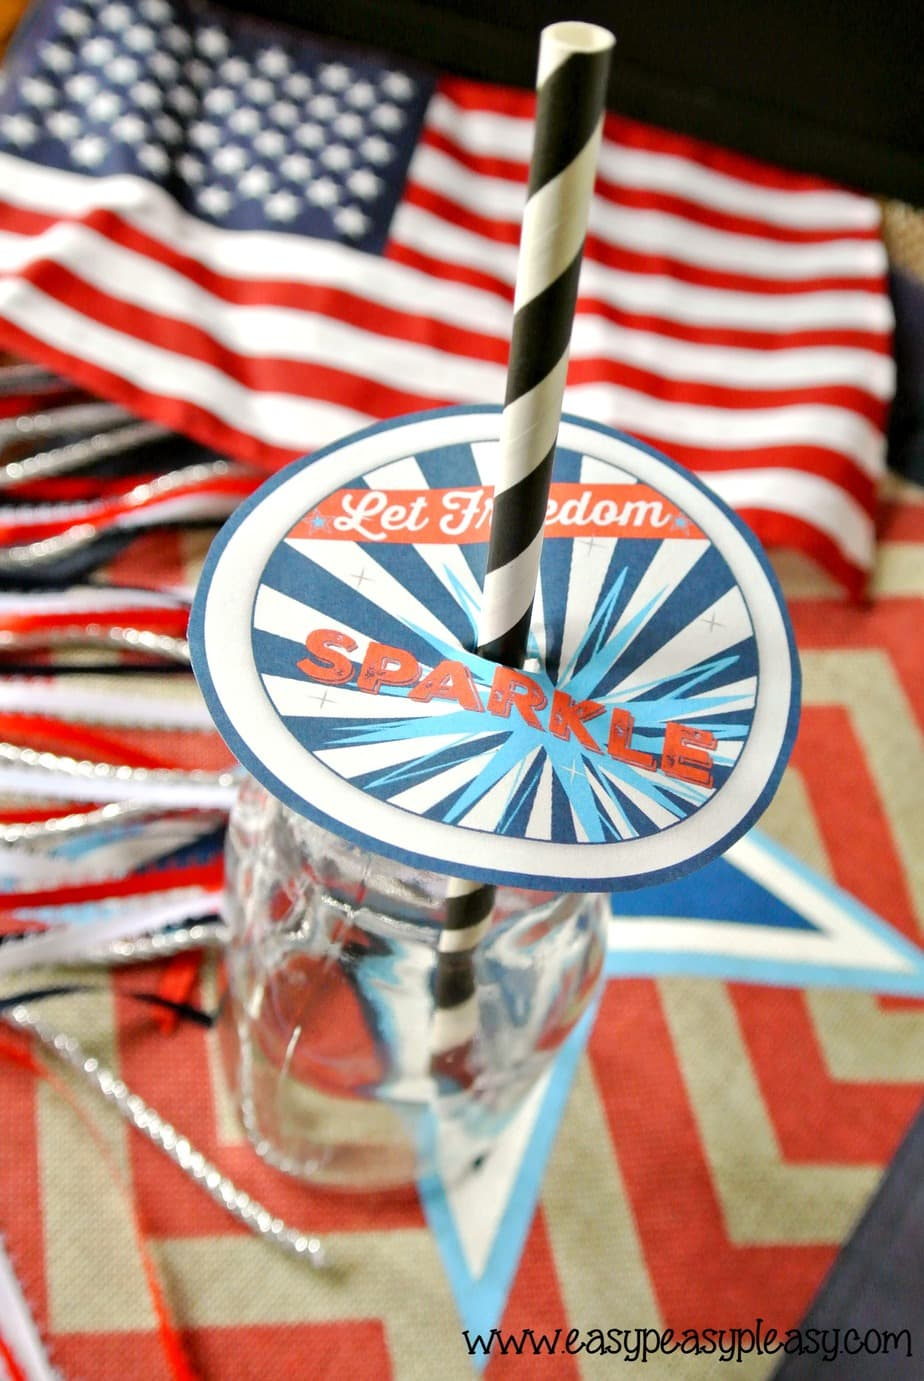 Free Printable Patriotic Straw Toppers and Cup Covers.